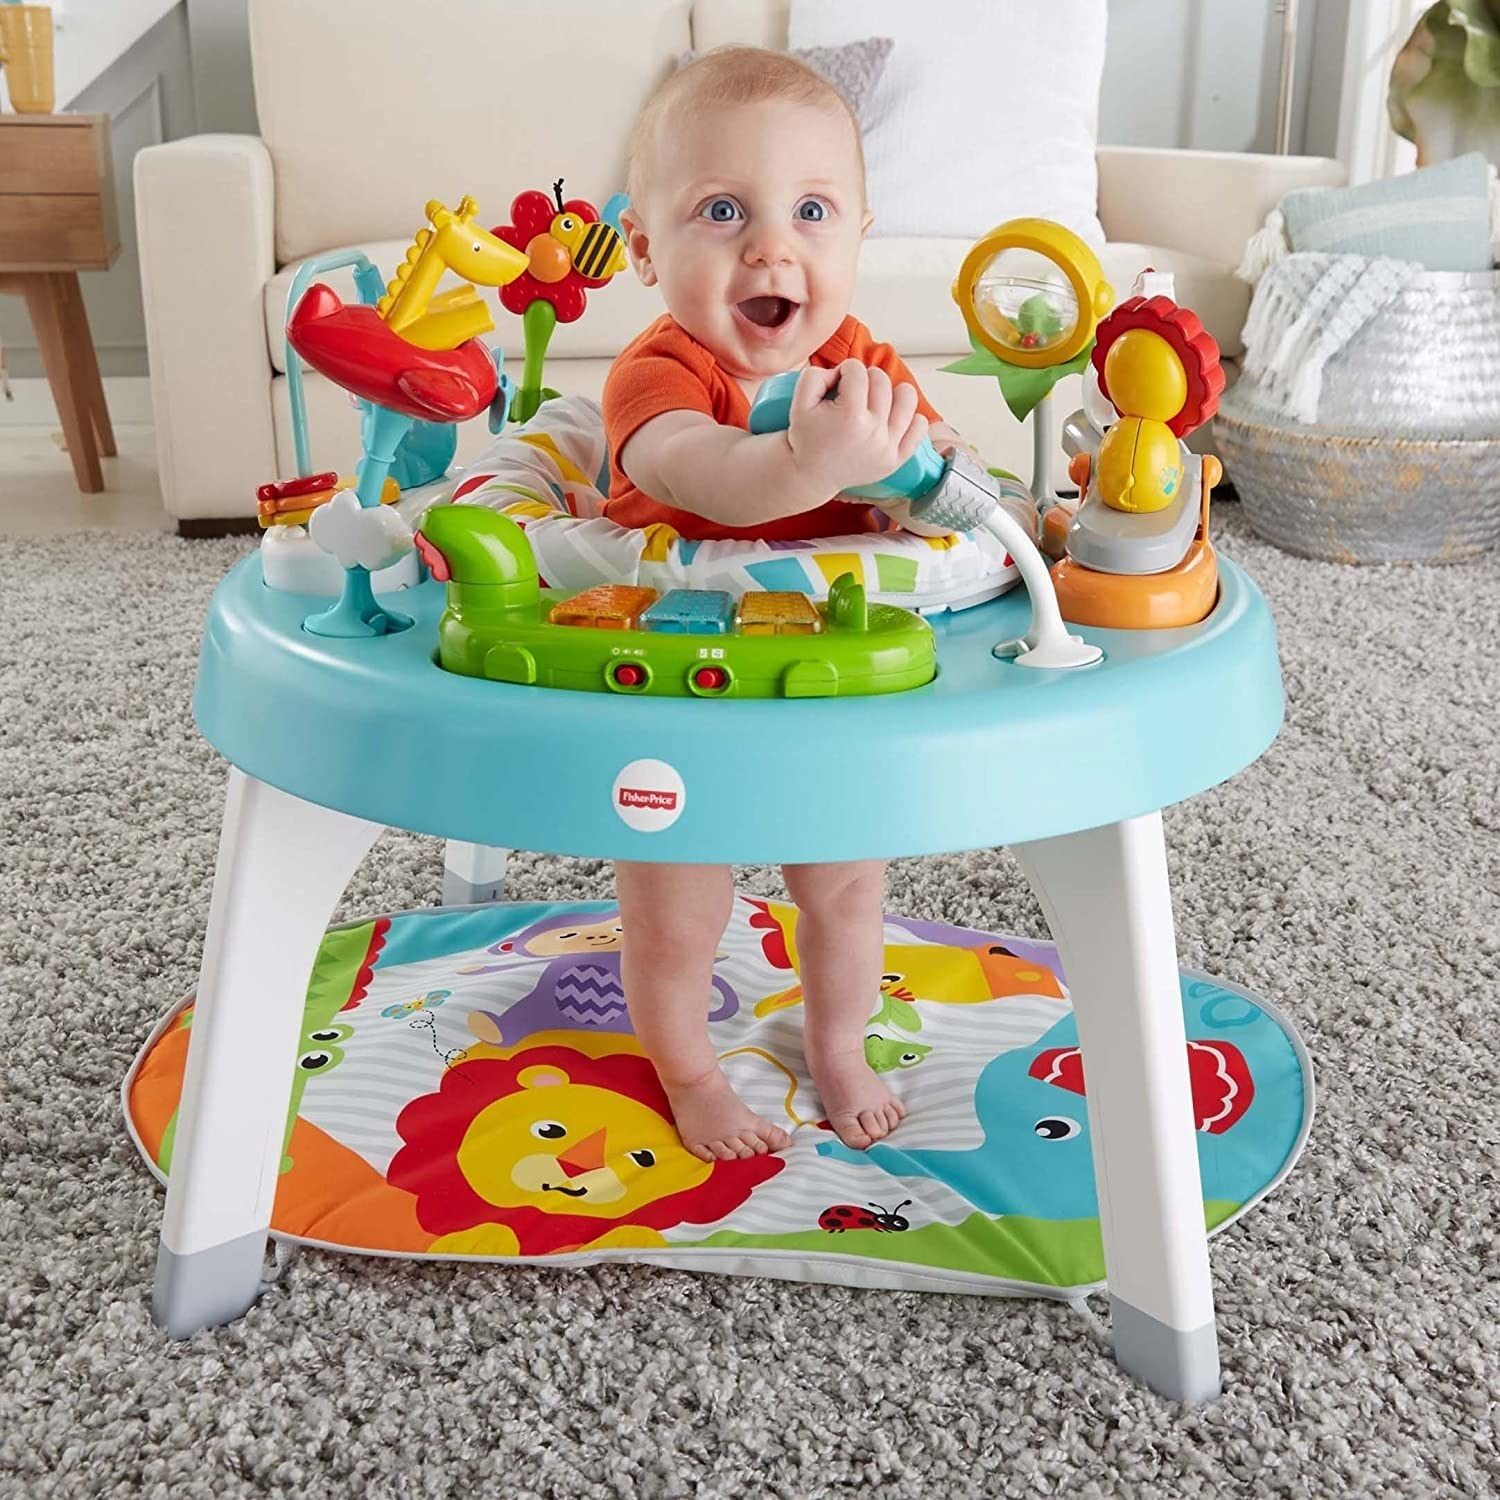 a baby standing inside the play center surrounded by toys